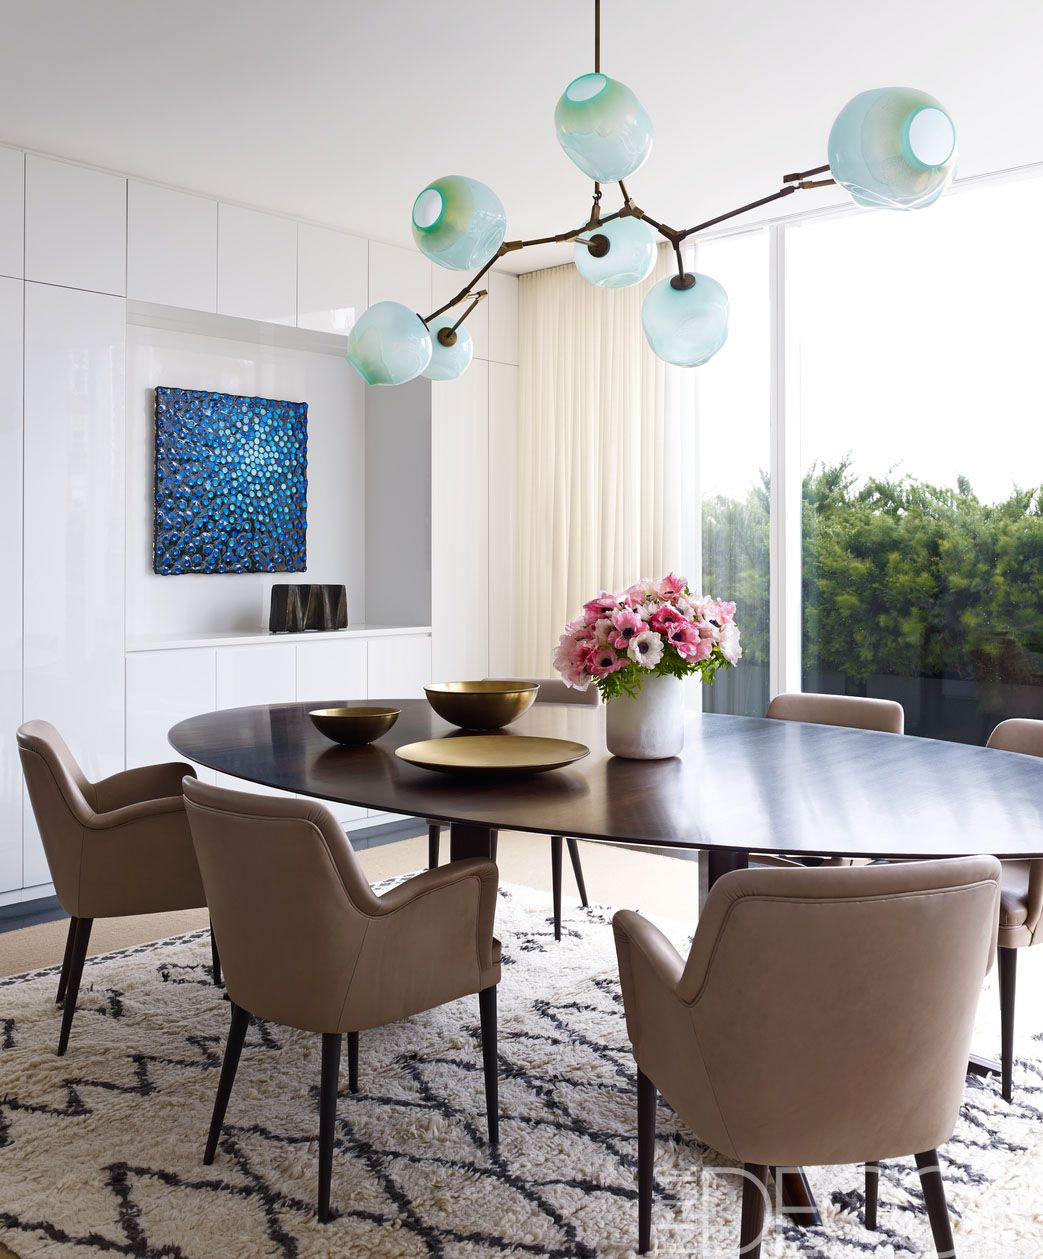 25 Modern Dining Room Decorating Ideas - Contemporary Dining Room Furniture